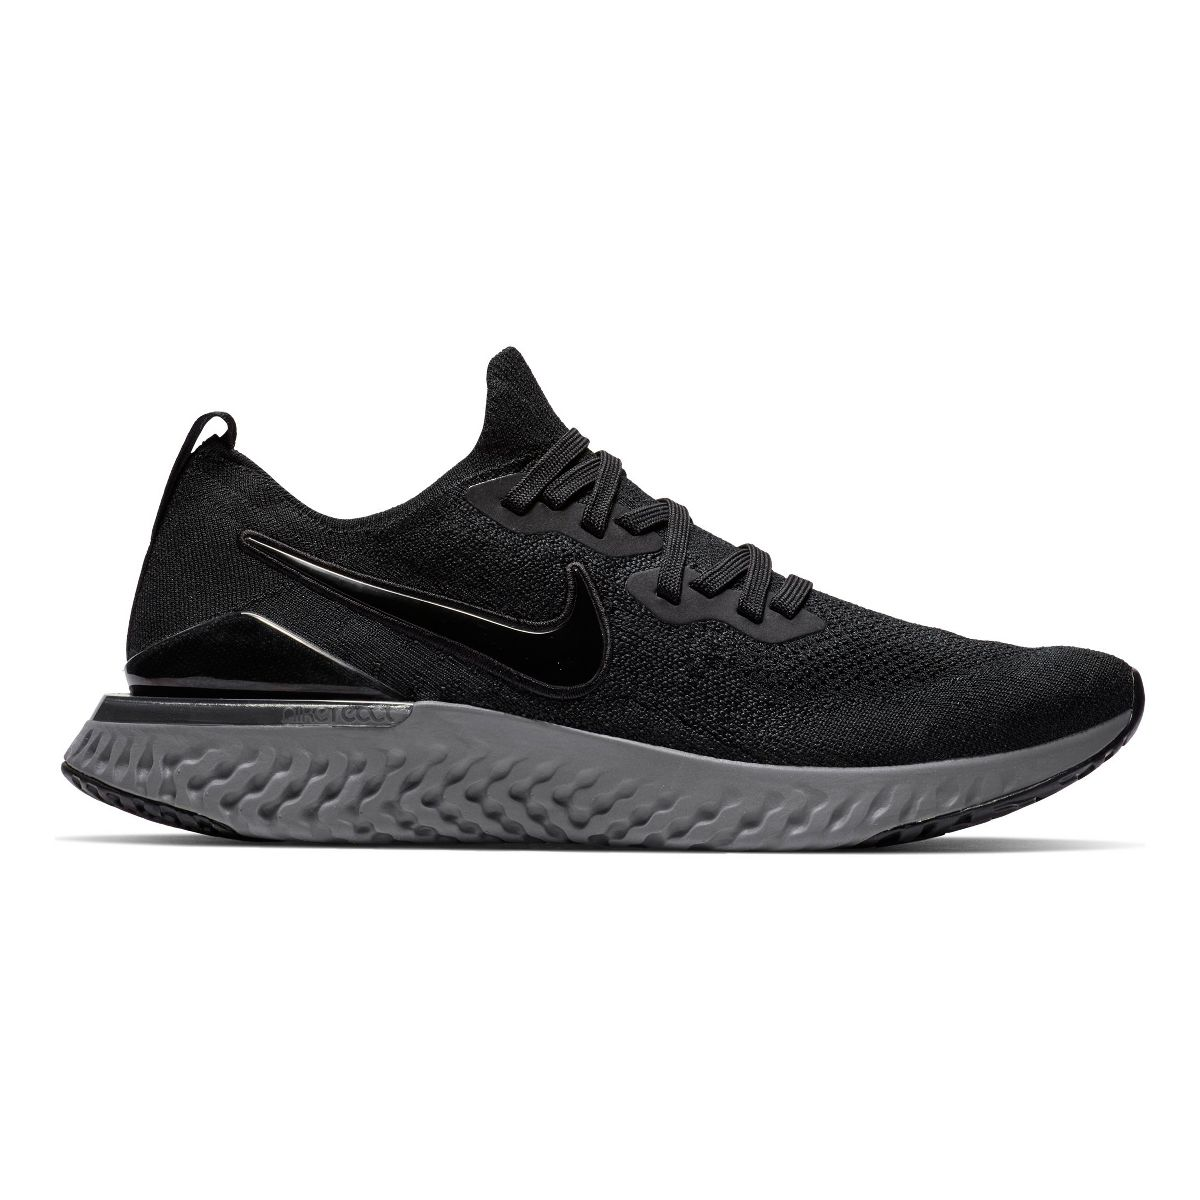 sports shoes b93d7 2a91b Best Cross Training Shoes - Training Shoes for Runners 2019